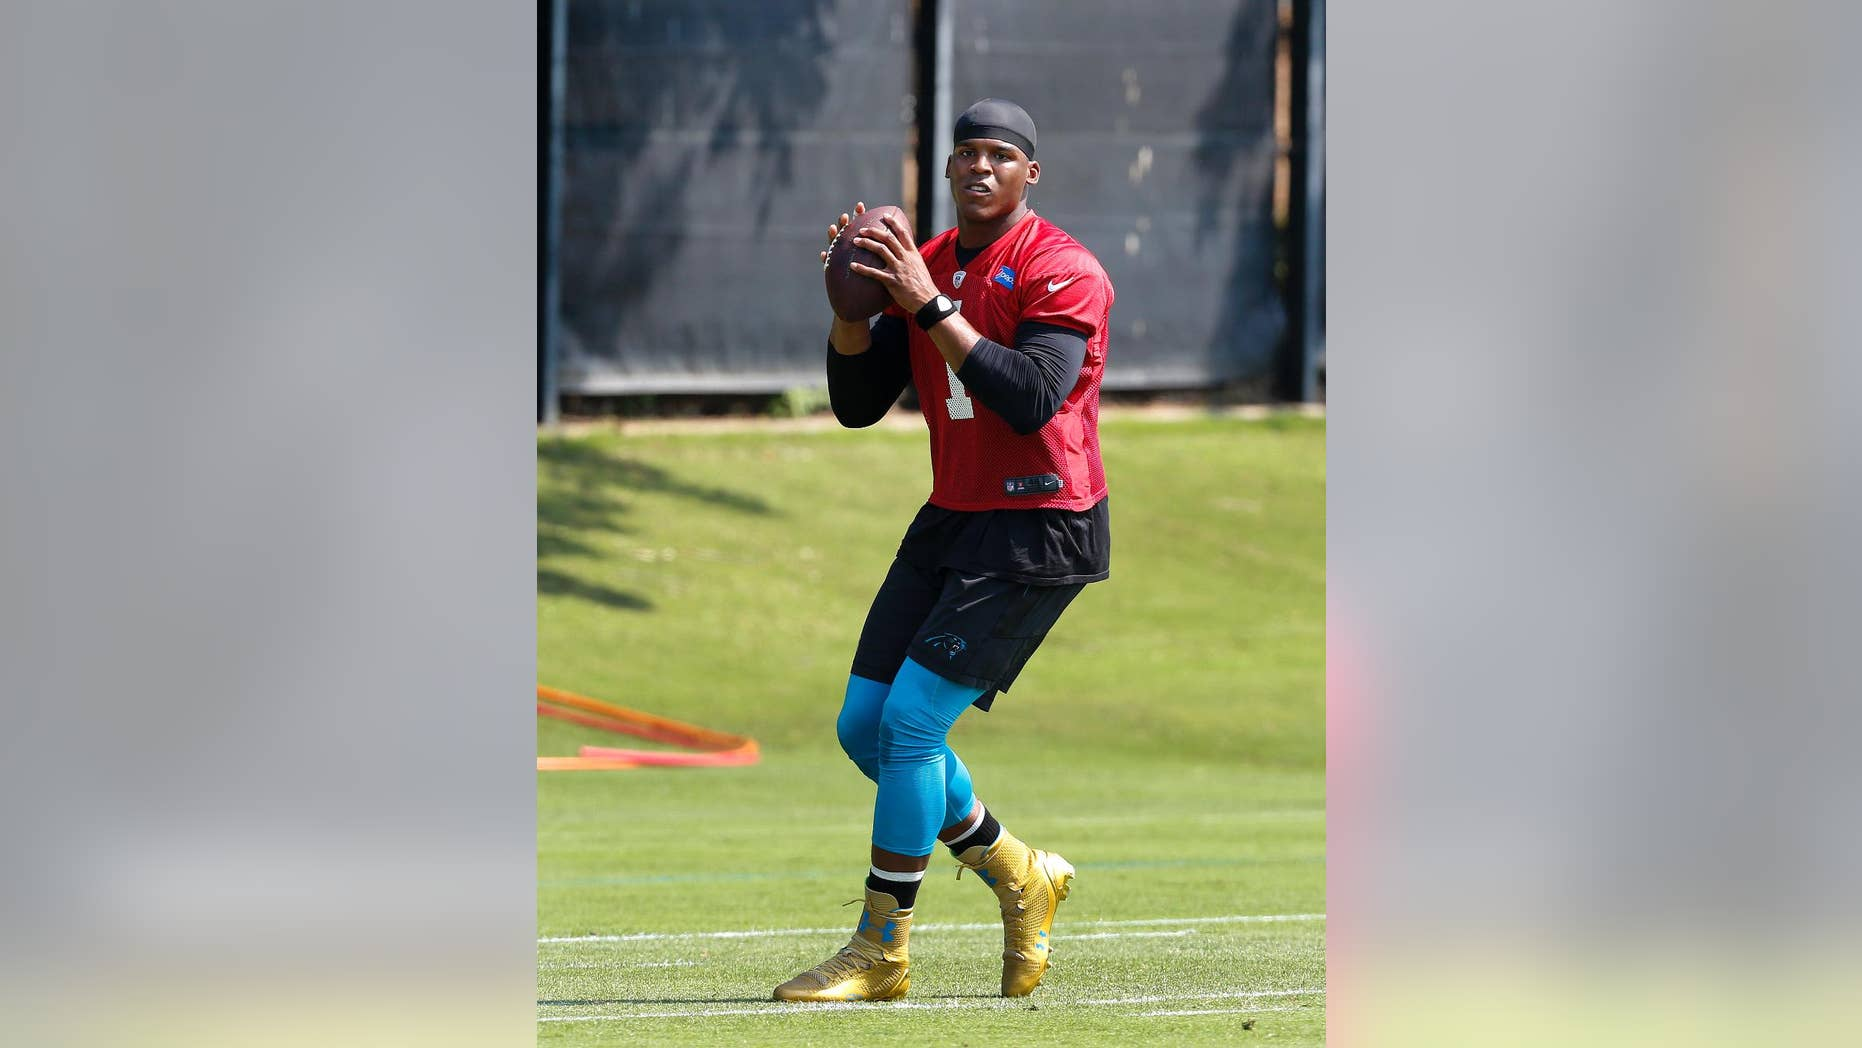 FILE - In this June 17, 2014 file photo, Carolina Panthers quarterback Cam Newton throws a pass during NFL football practice in Charlotte, N.C. Panthers coach Ron Rivera is expected to give an update on Newton's ankle on Thursday, July 24, 2014,one day before the team takes the field for the start of training camp. (AP Photo/Nell Redmond, File)